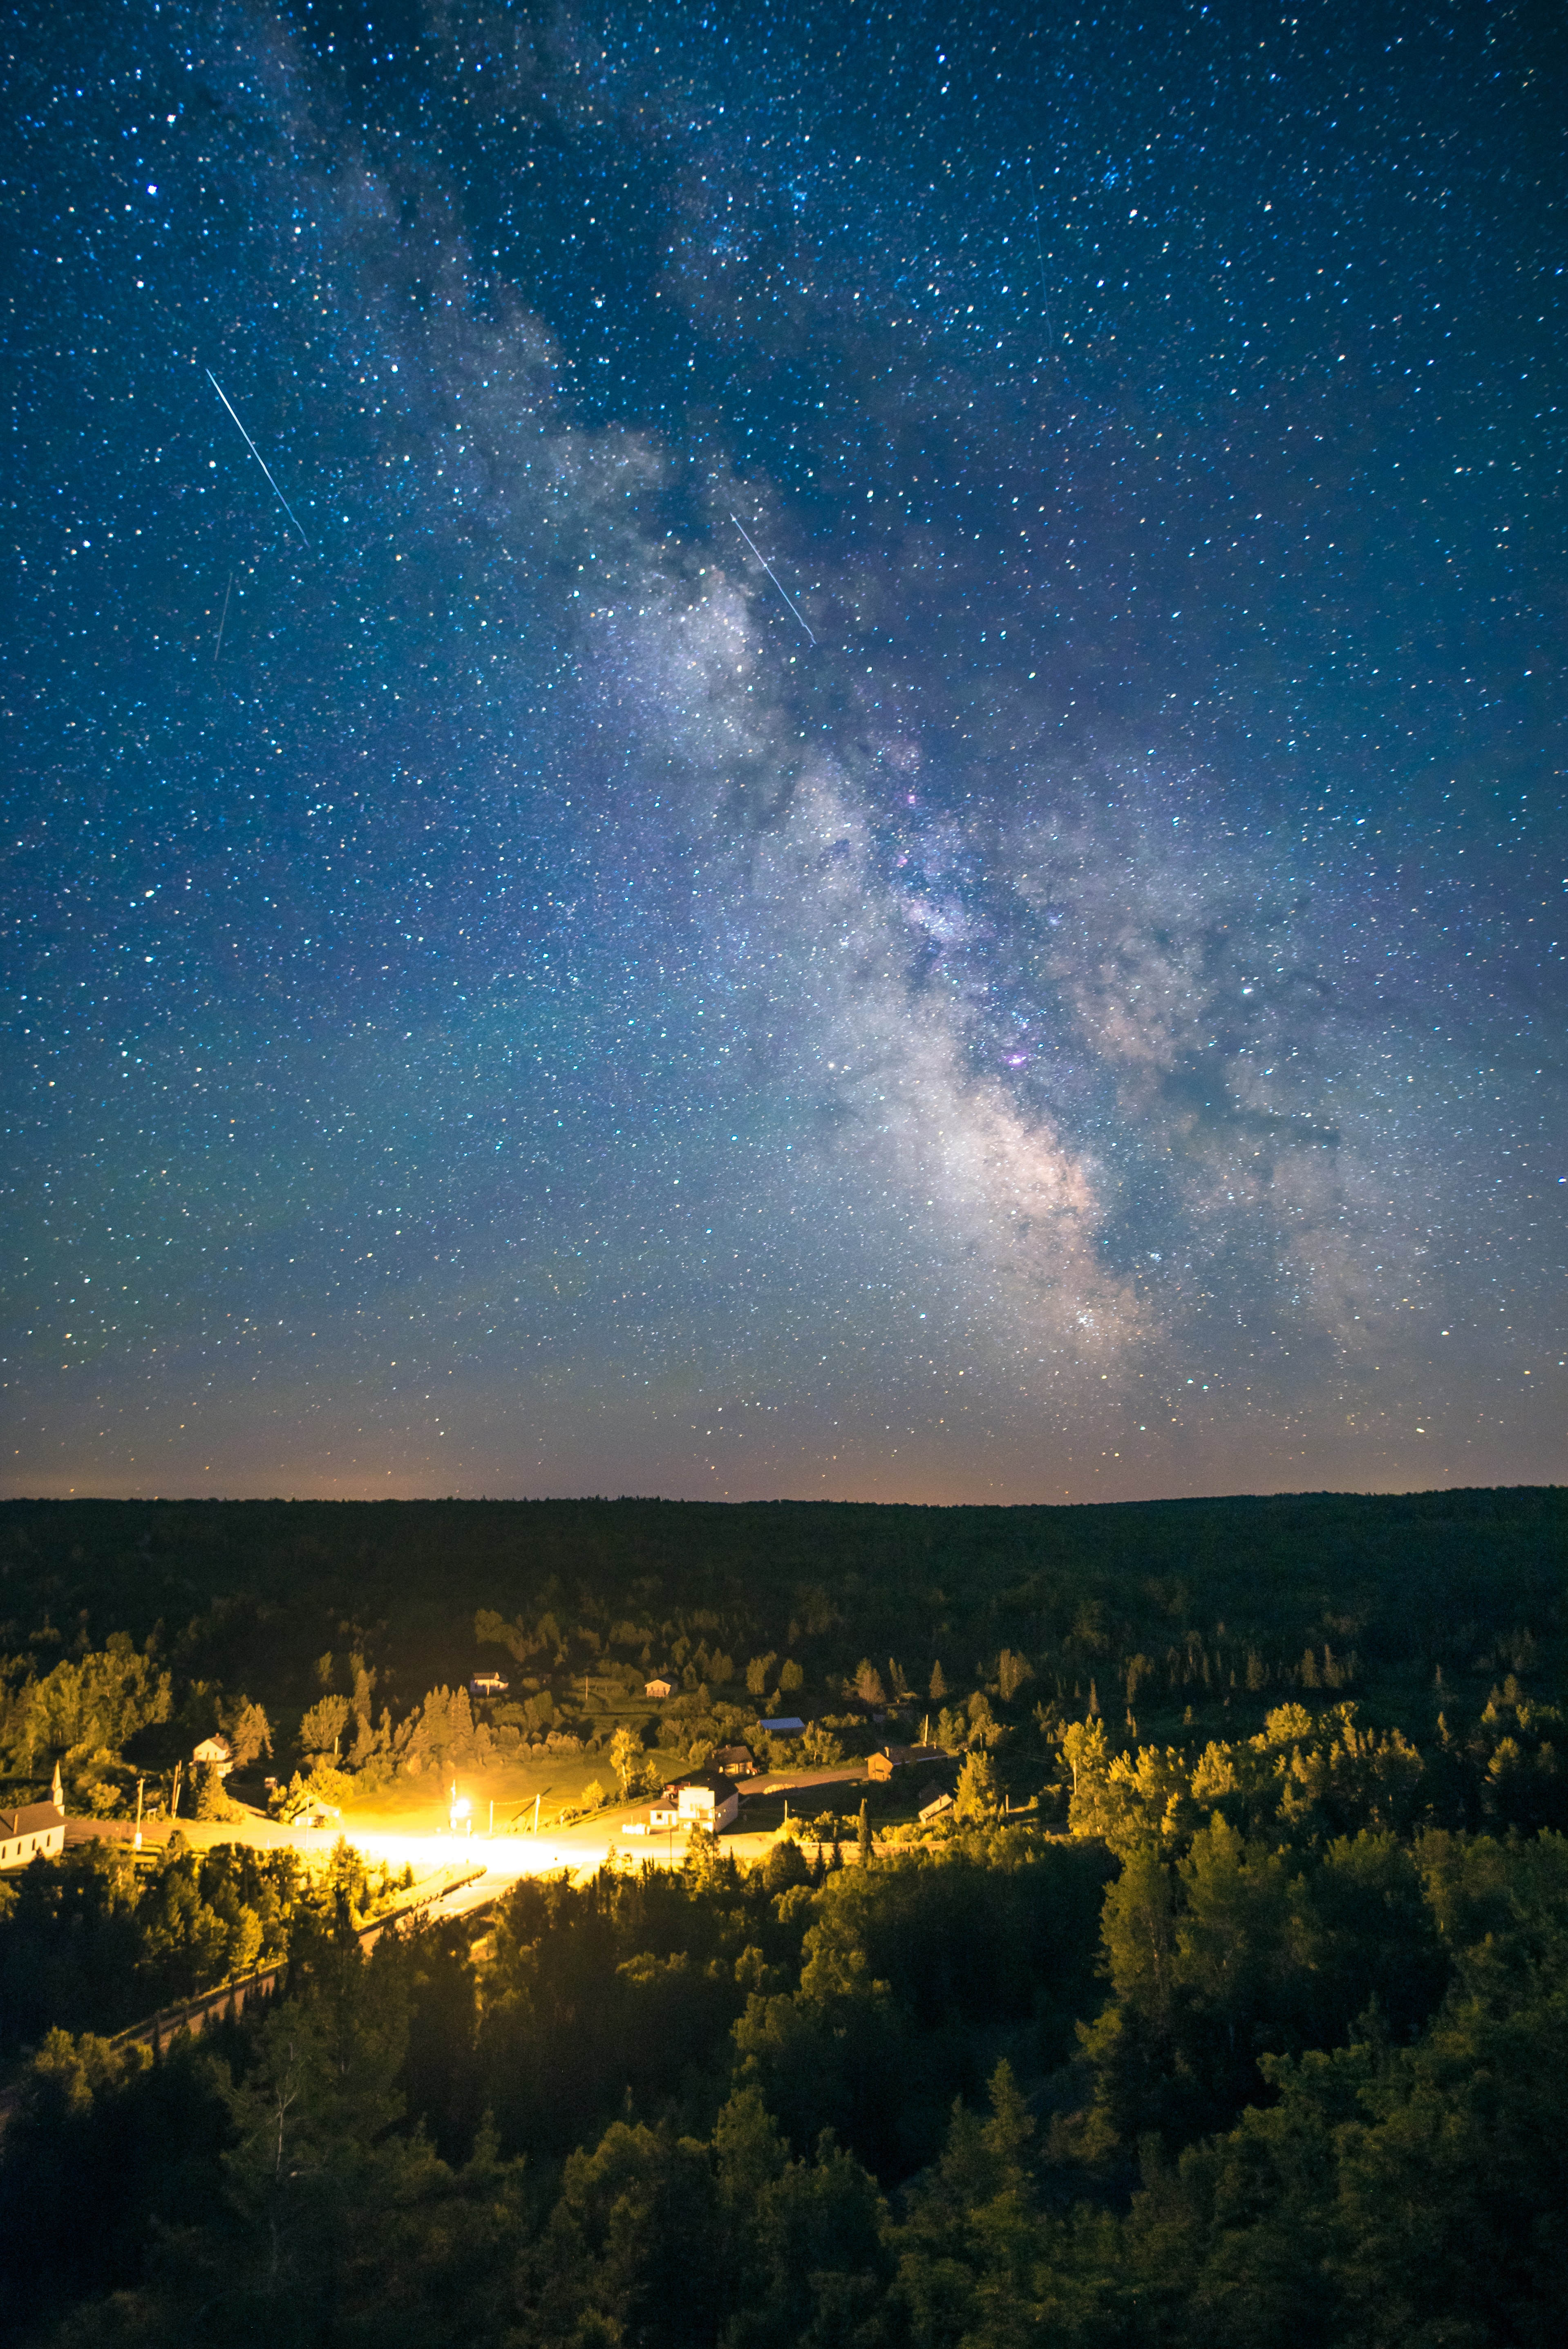 time lapse photography of shooting star passing by